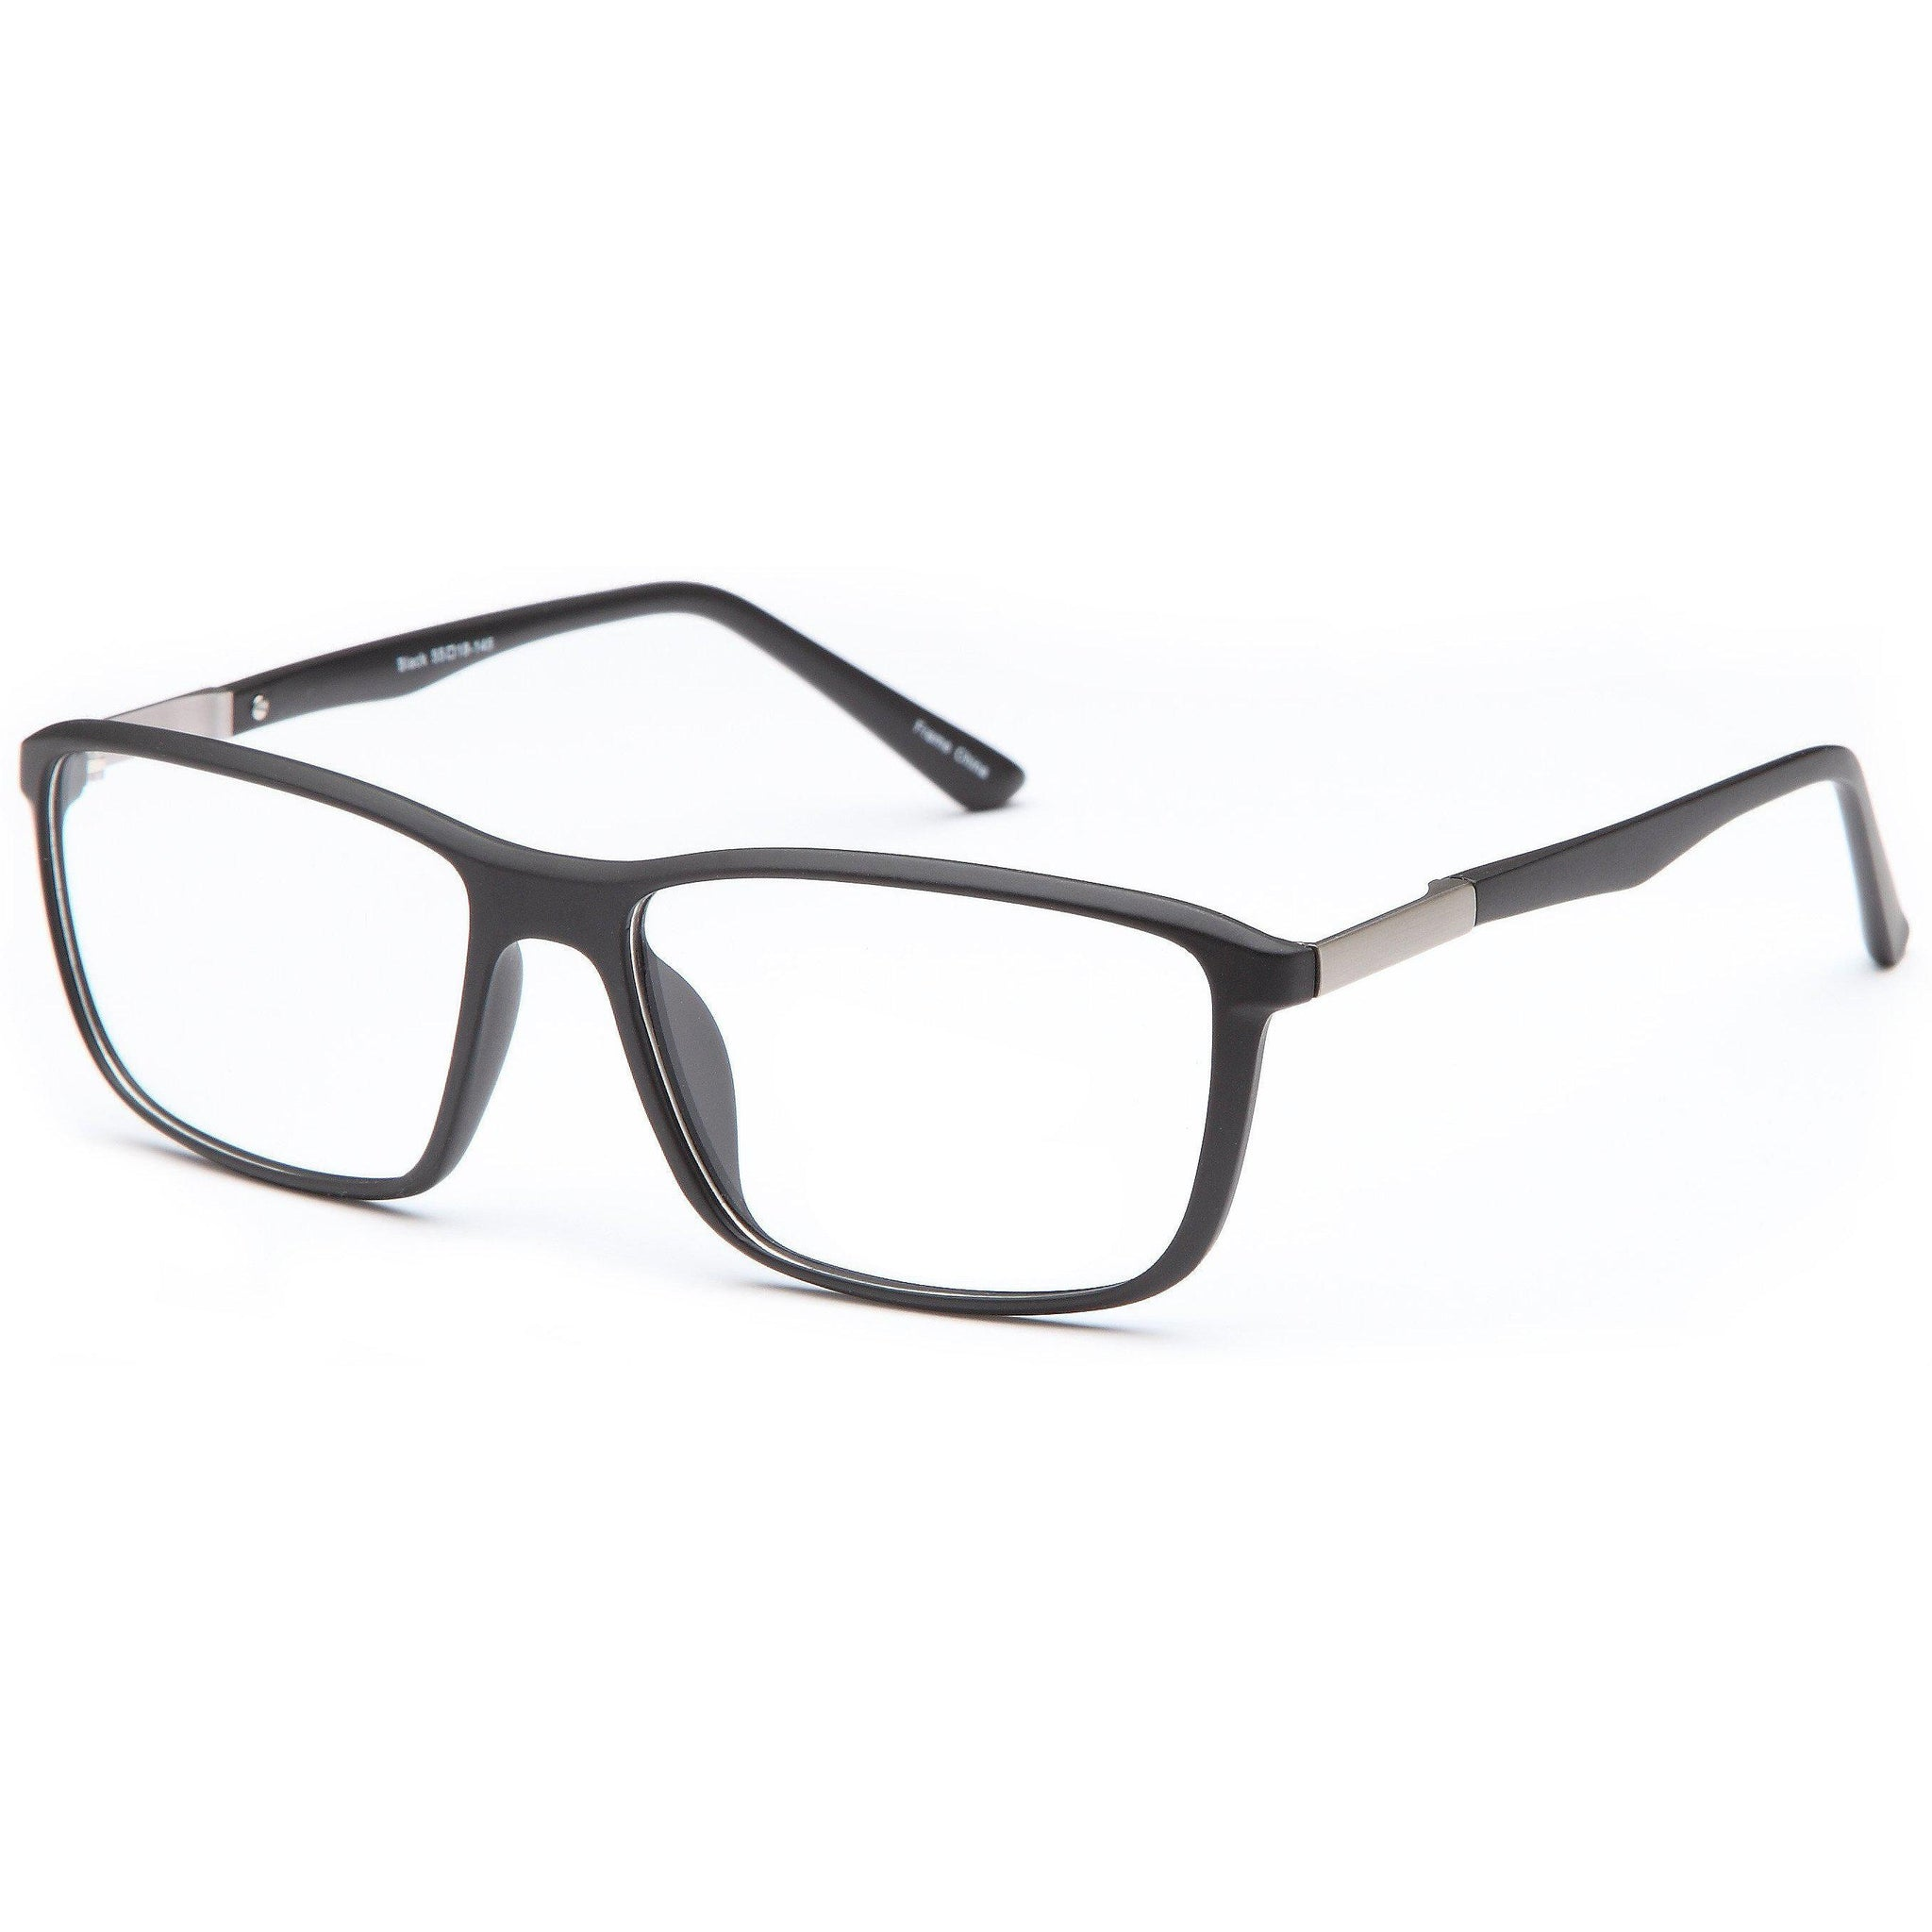 The Icons Prescription Glasses MARCUS Eyeglasses Frame